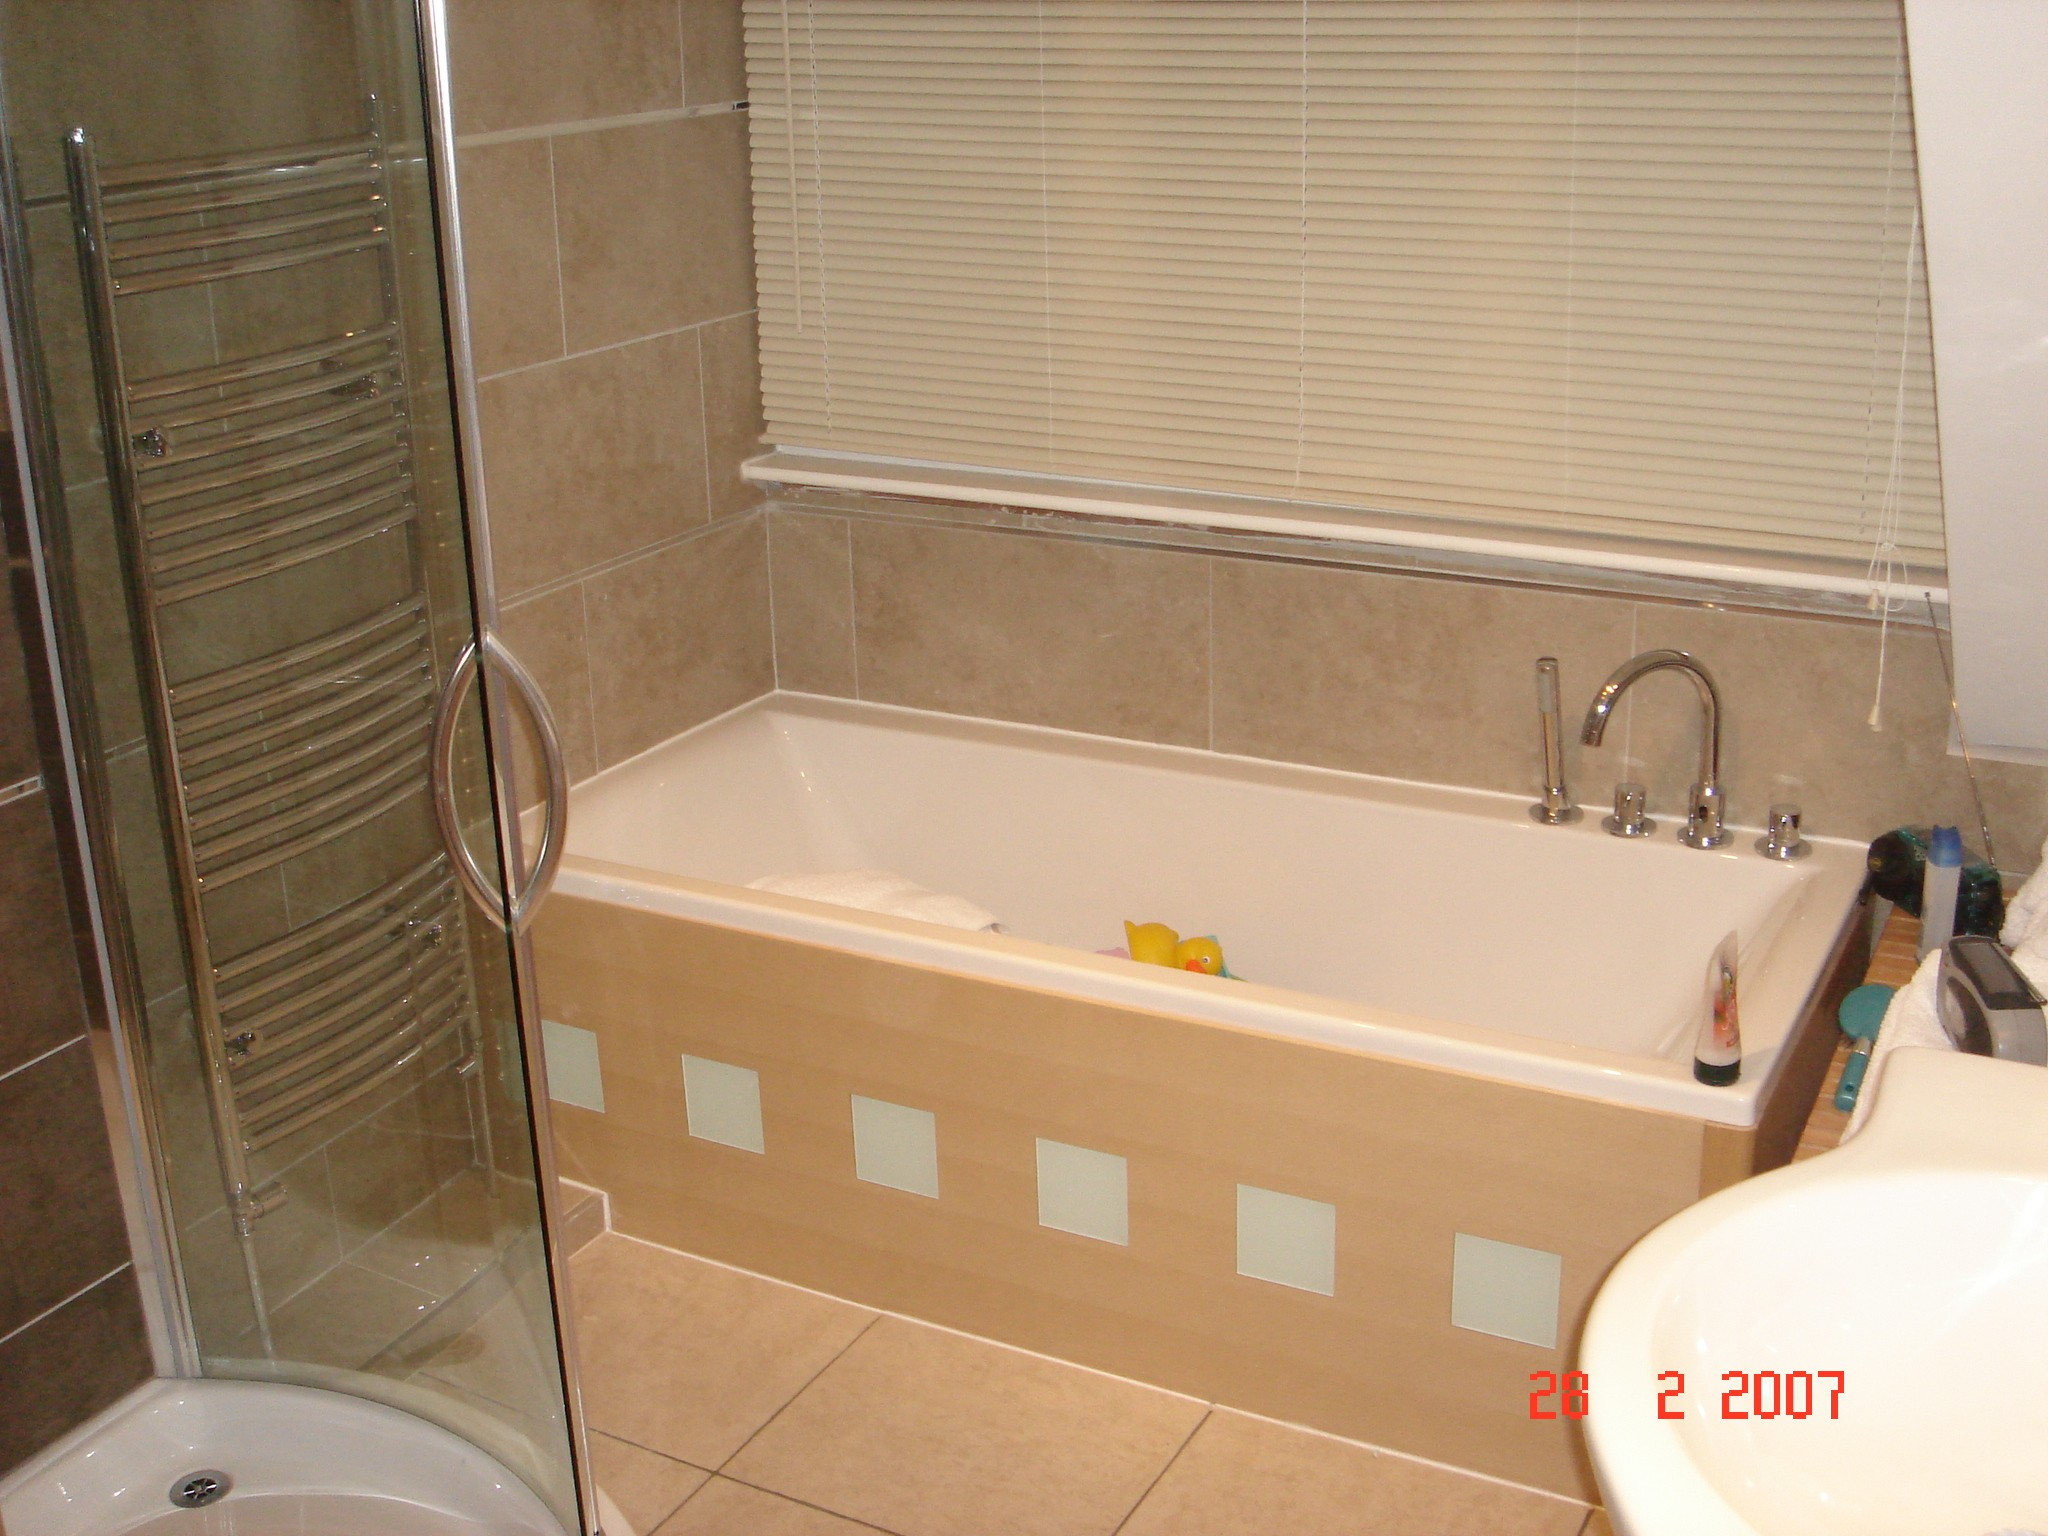 Bathrooms birmingham uk - Kitchen And Bathroom Fitting Services